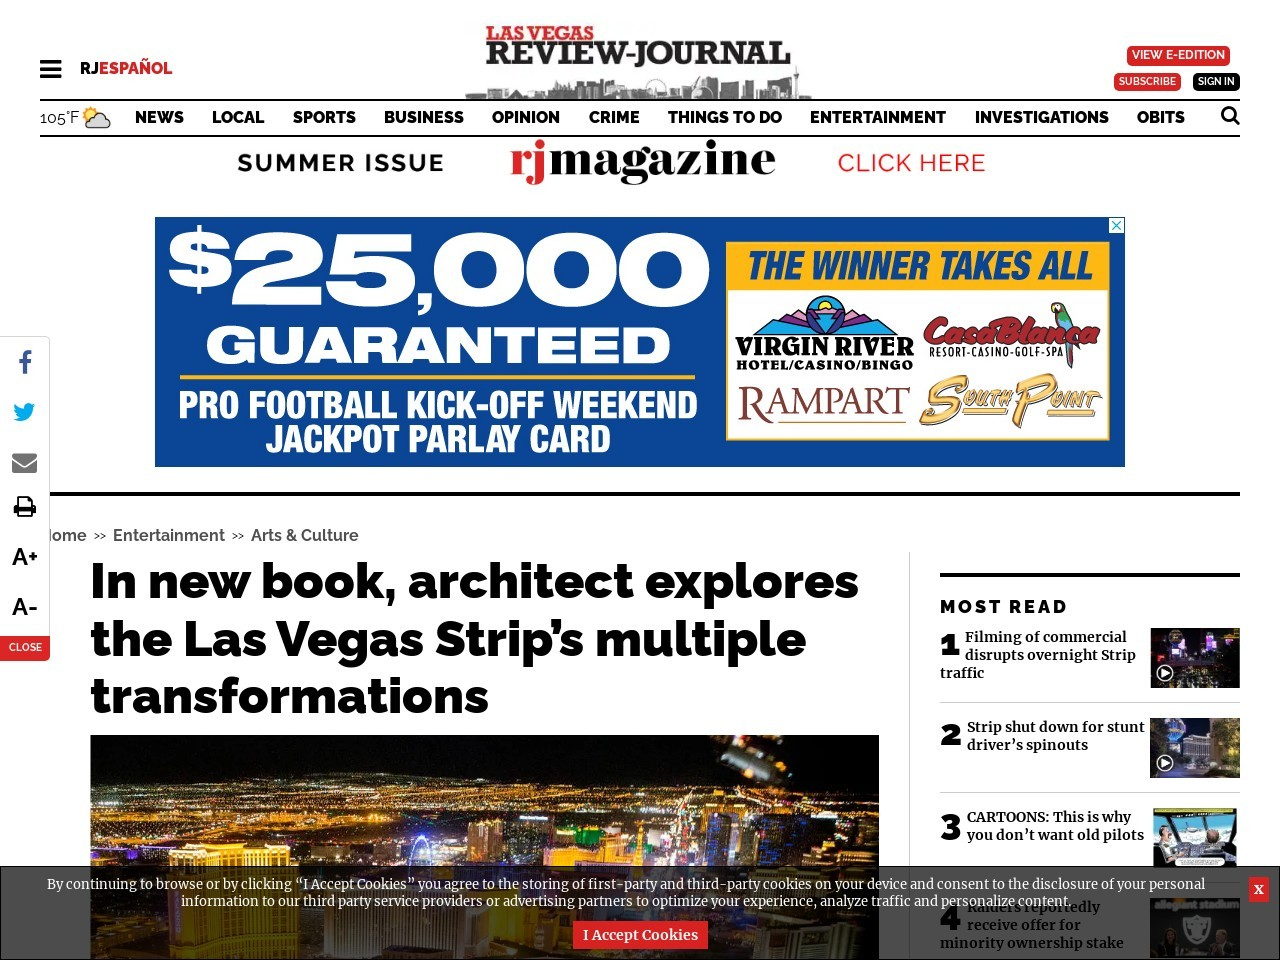 In new book, architect explores the Las Vegas Strip's multiple transformations